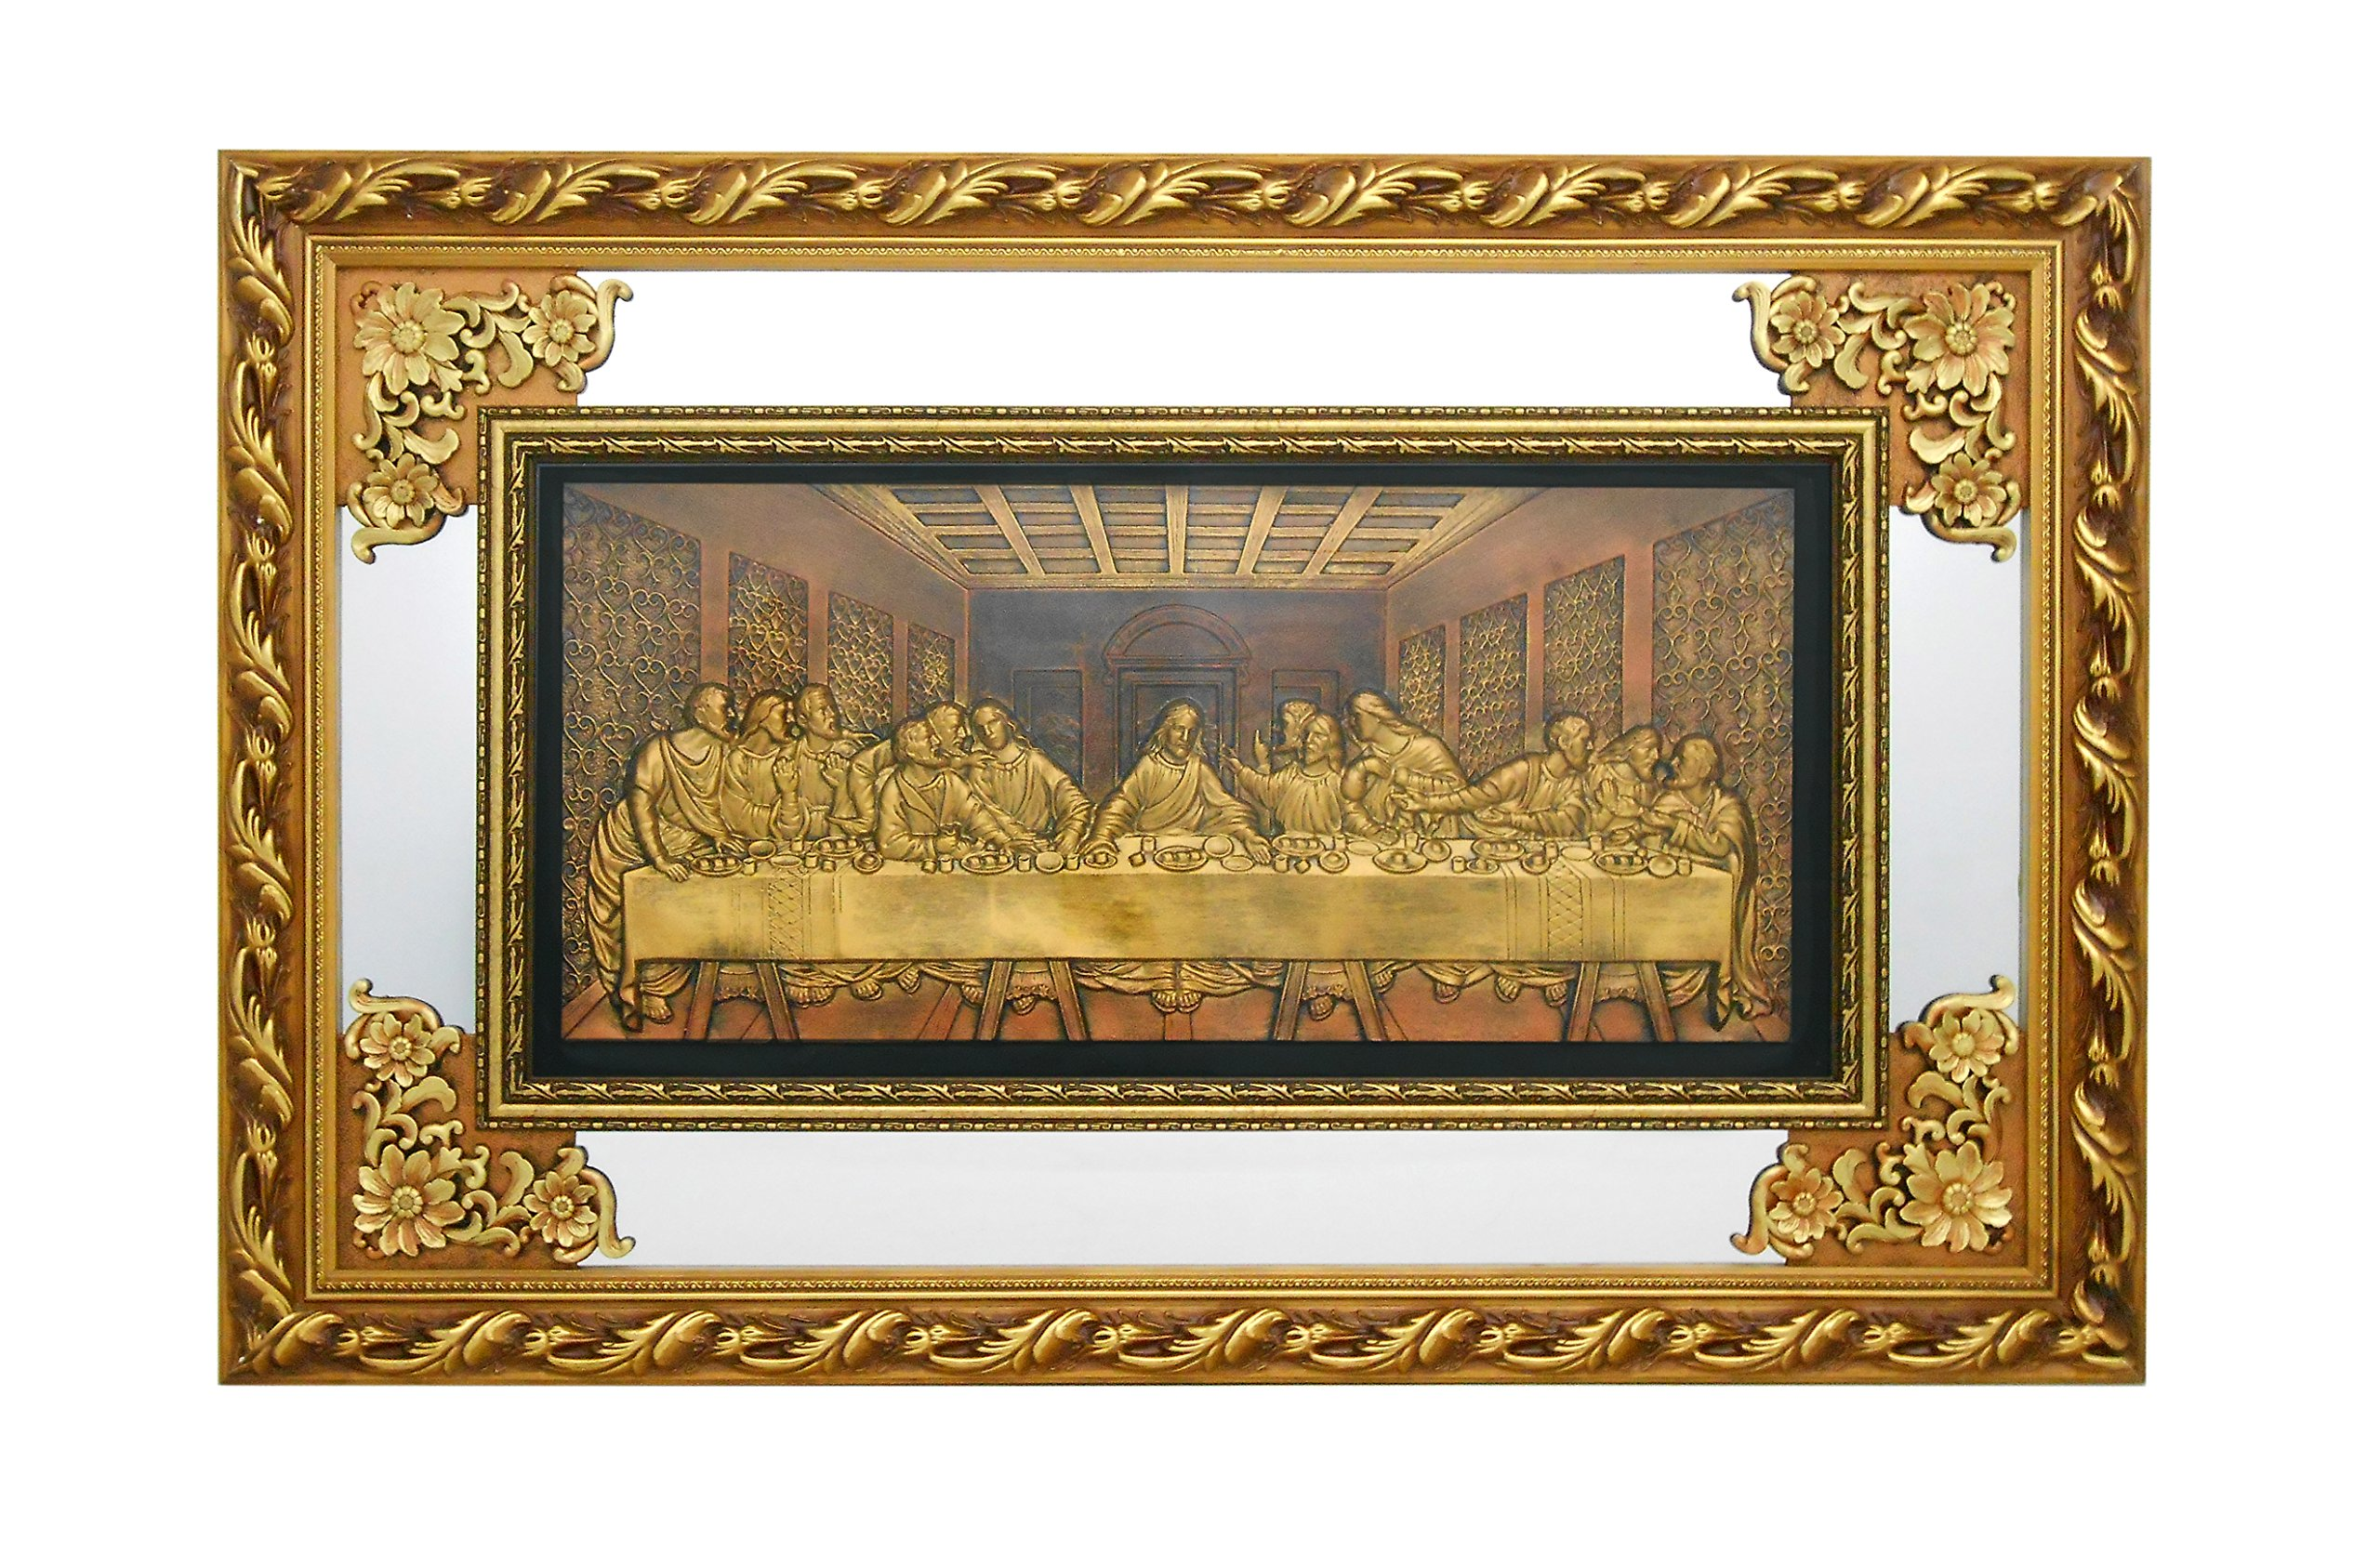 The Last Supper - Christian Wall Hanging Ornate Gold Wood Frame with Mirror and Glass # 1348 by Nabil's Gift Shop